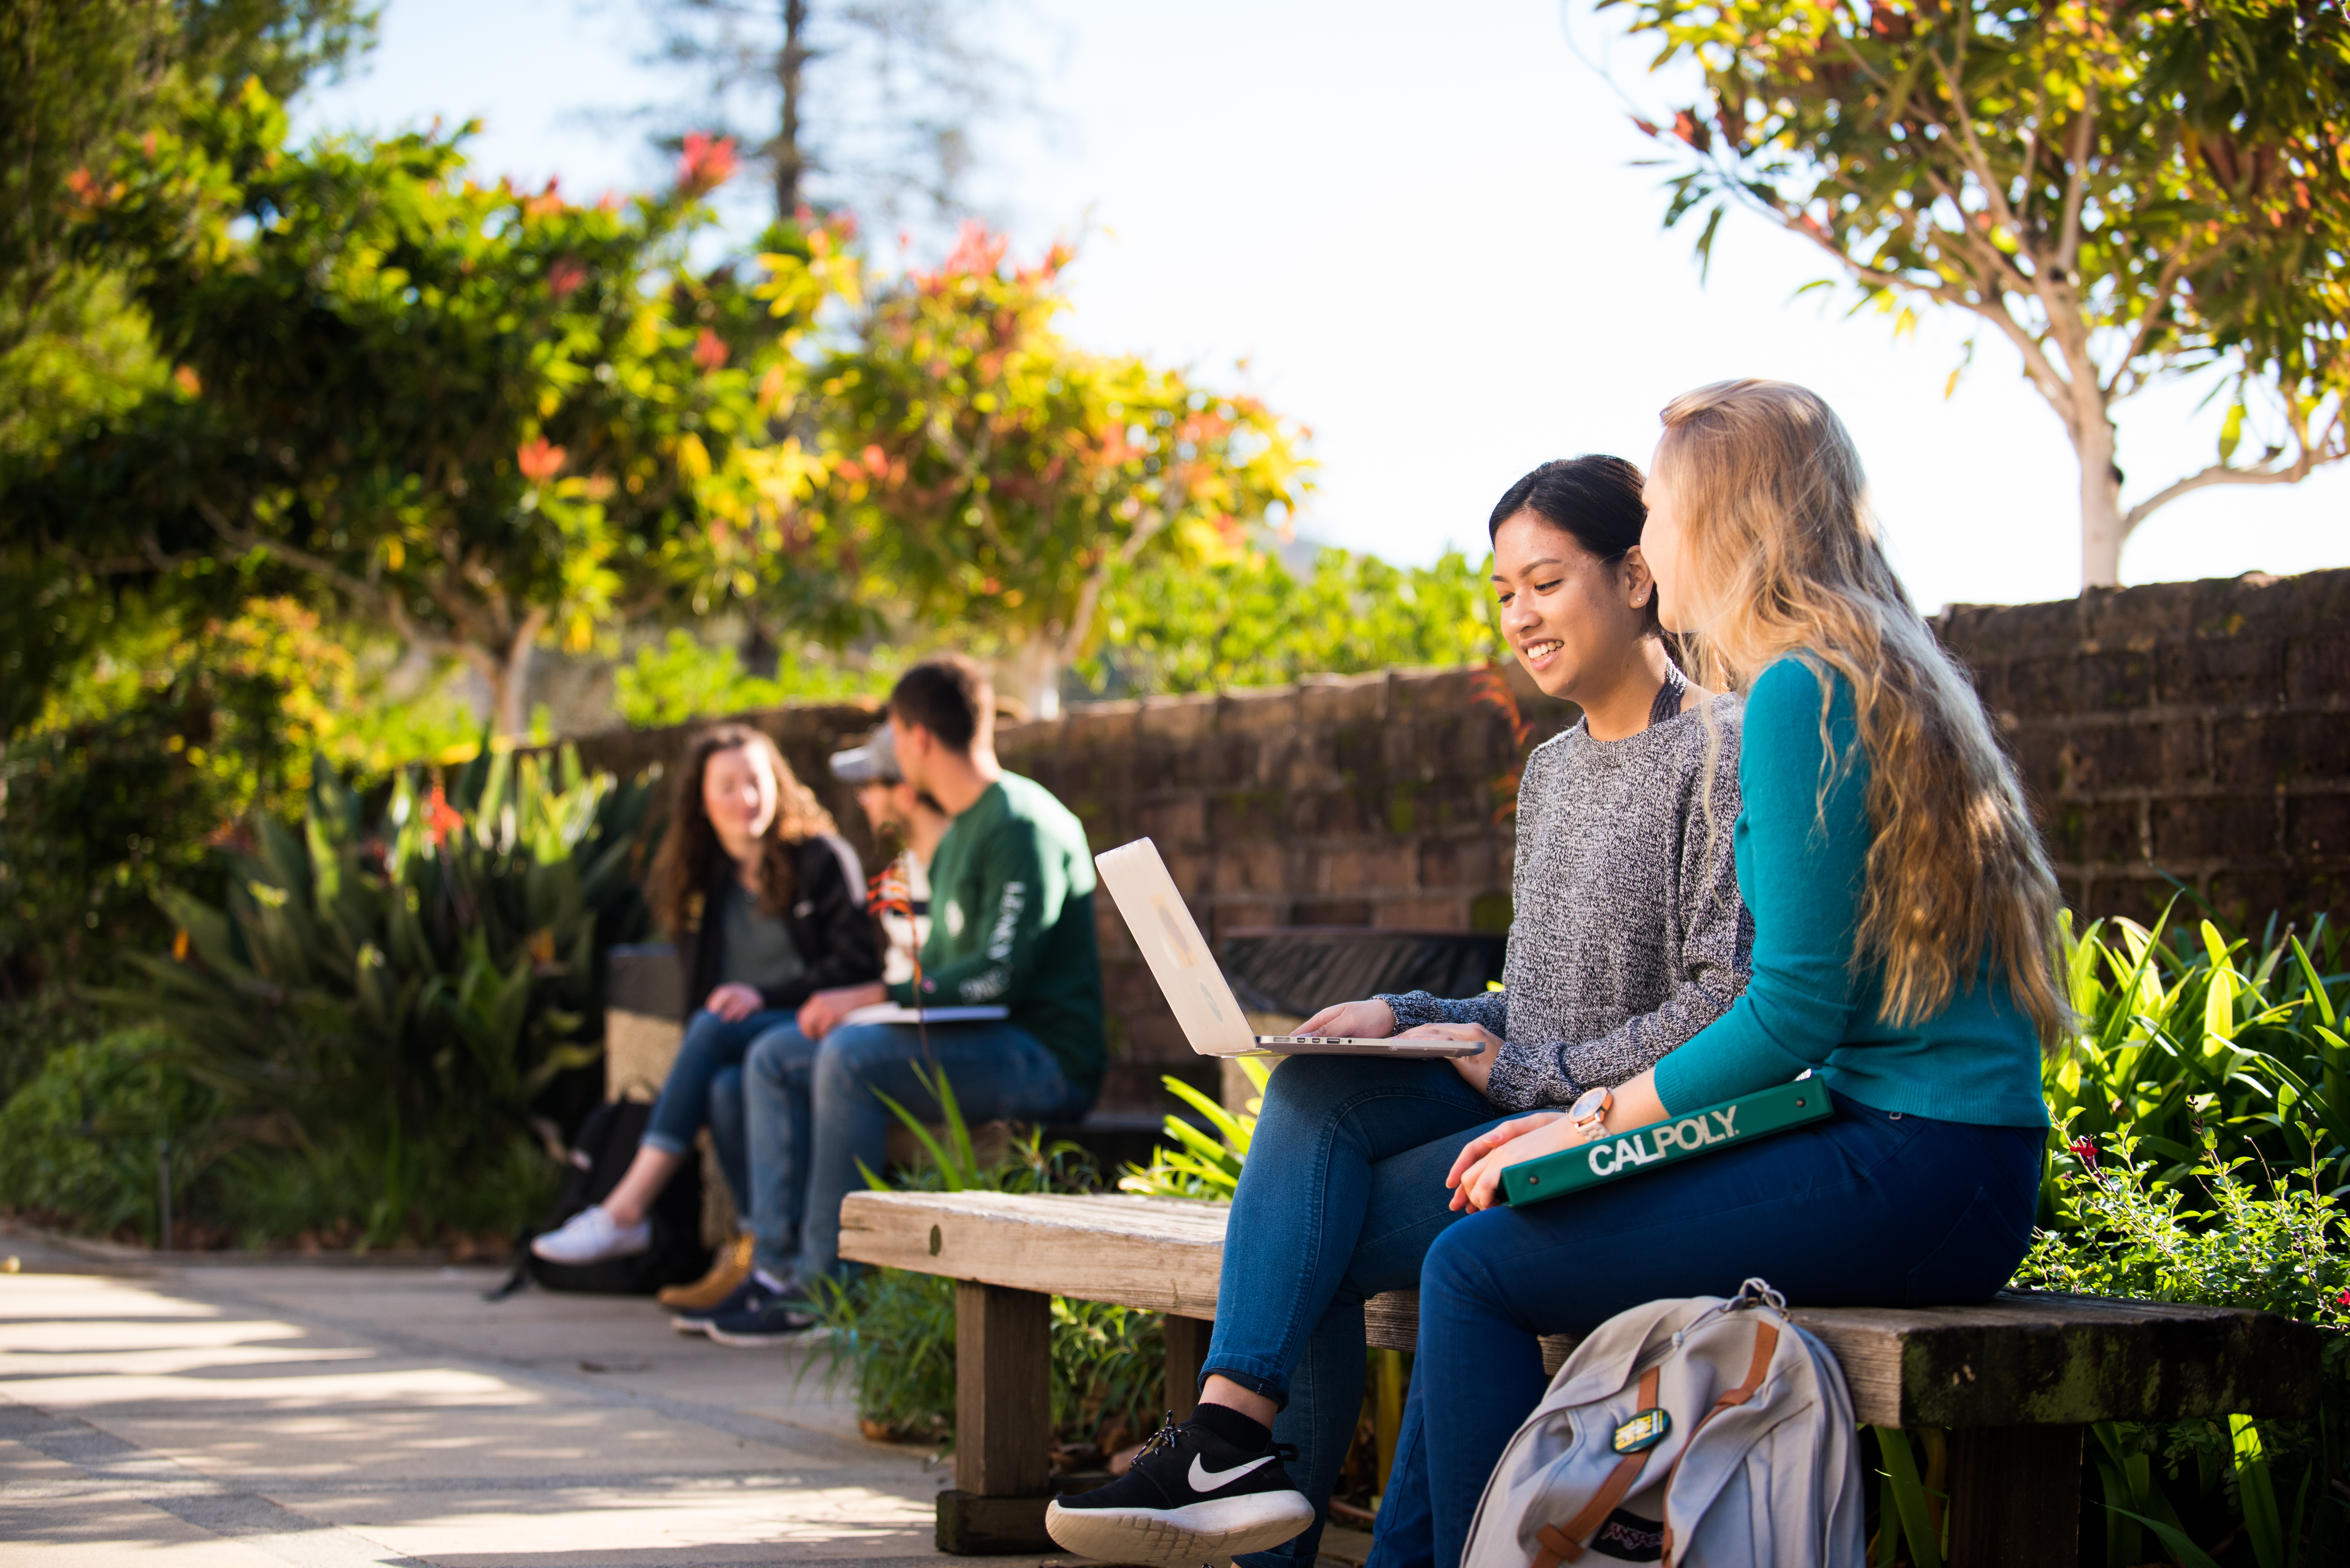 Two students sitting on bench outside talking